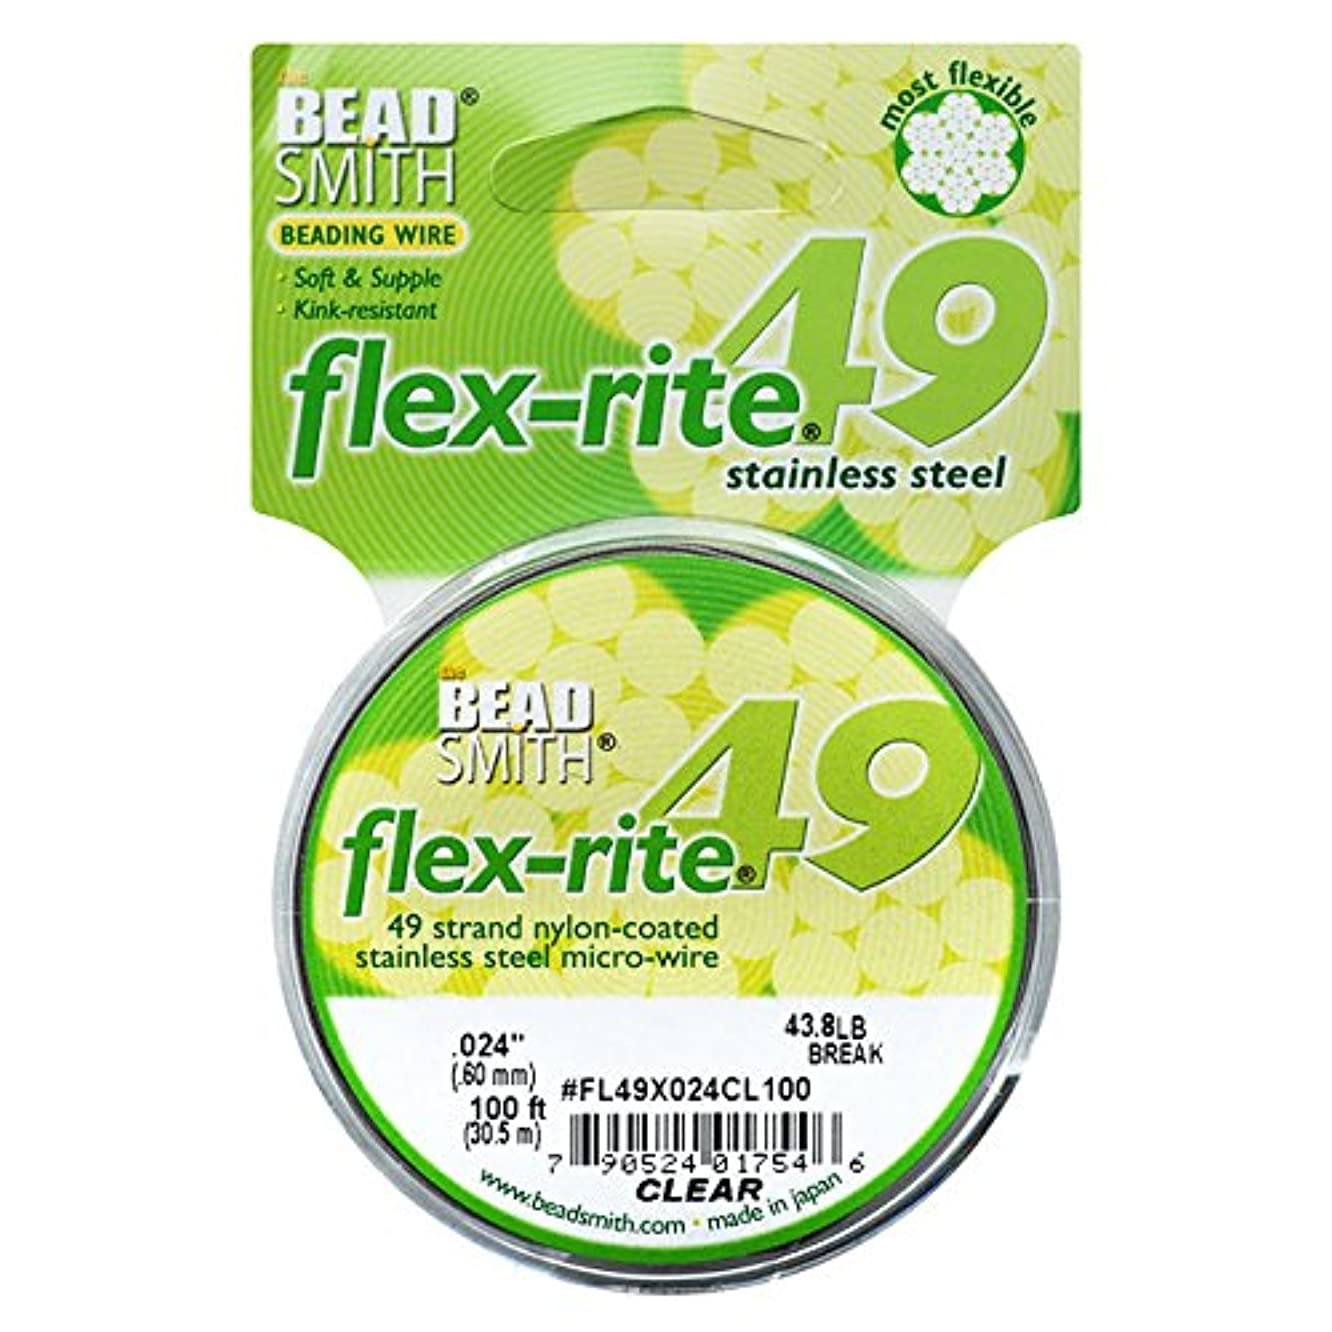 49 strand Flex Rite Beading Stringing Wire .024 Inch 100 Feet Professional Nylon Coated Stainless Steel extra strong 43.8lb Break , trprcmcws606851